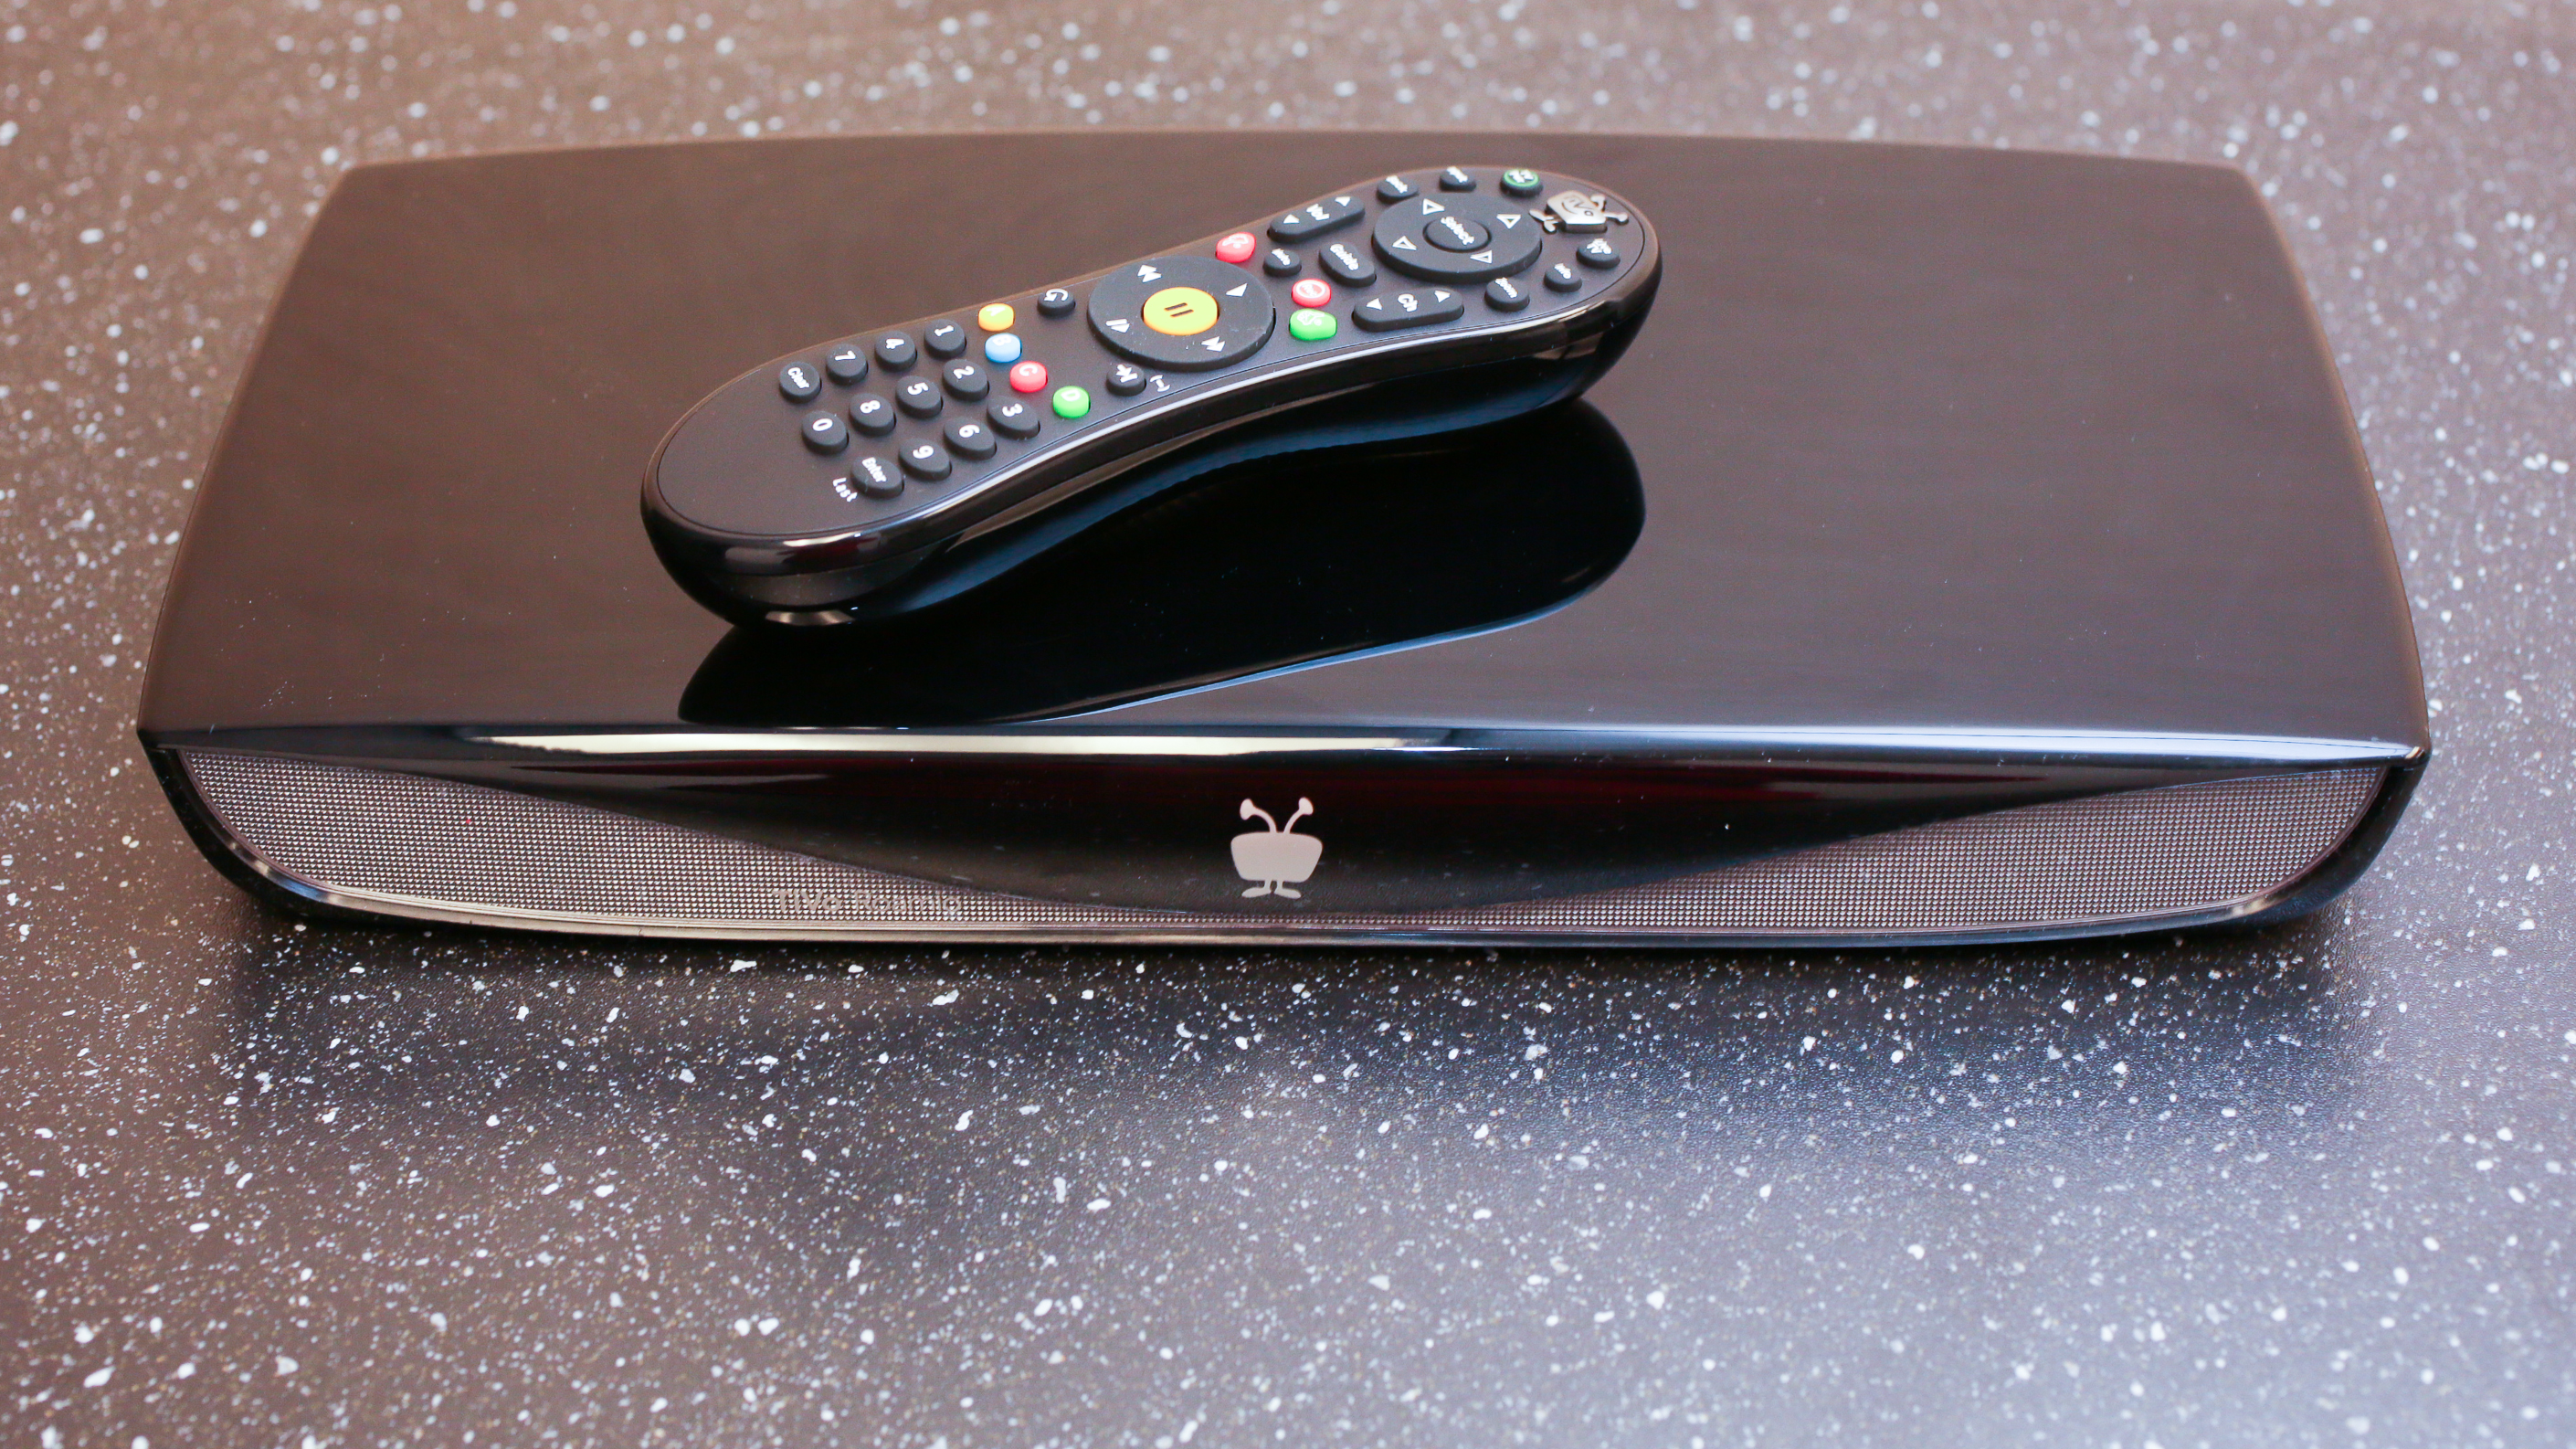 tivo-roamio-product-photos08.jpg